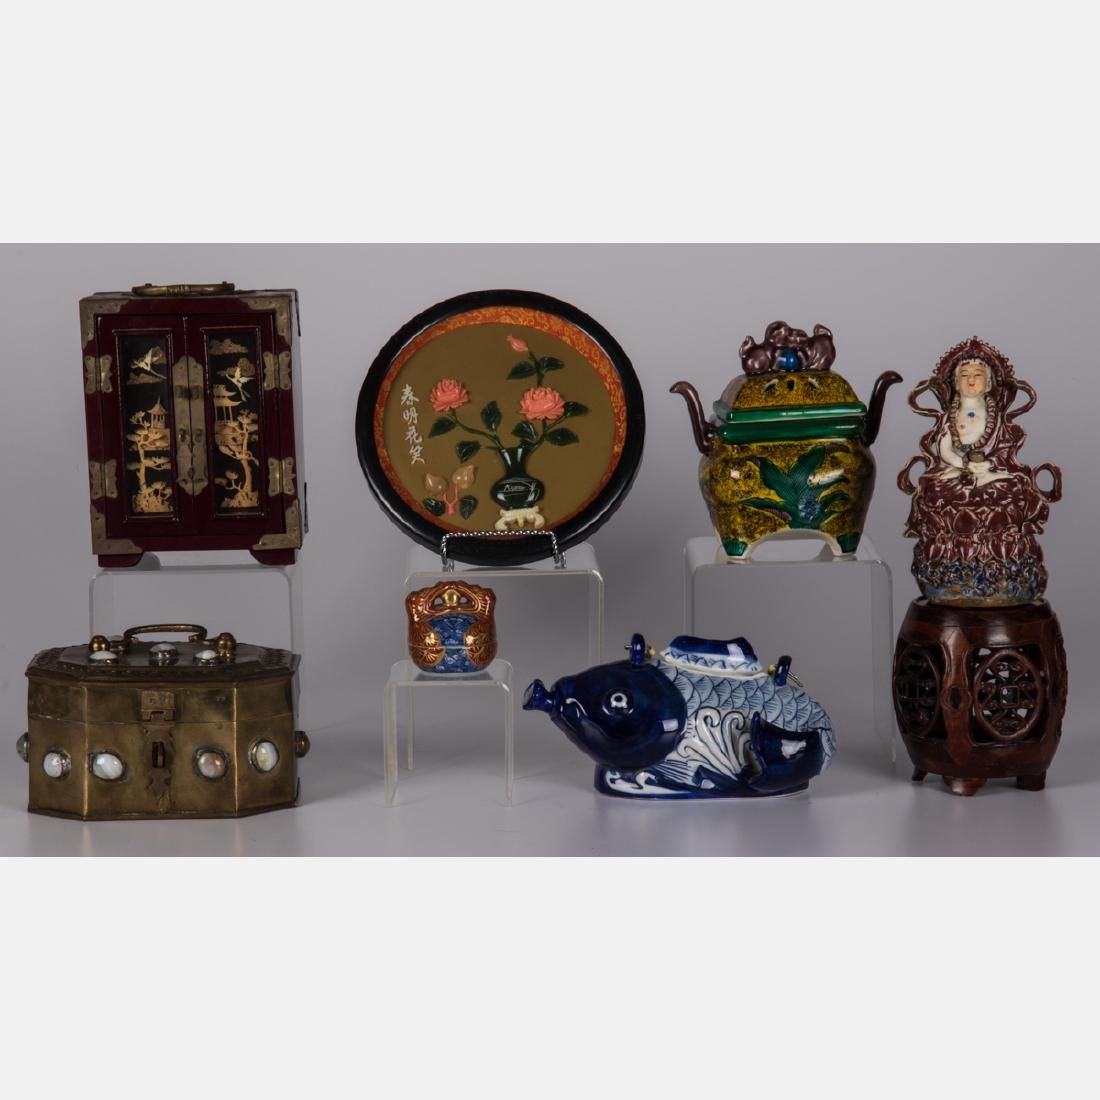 A Miscellaneous Collection of Asian Ceramic, Wood and